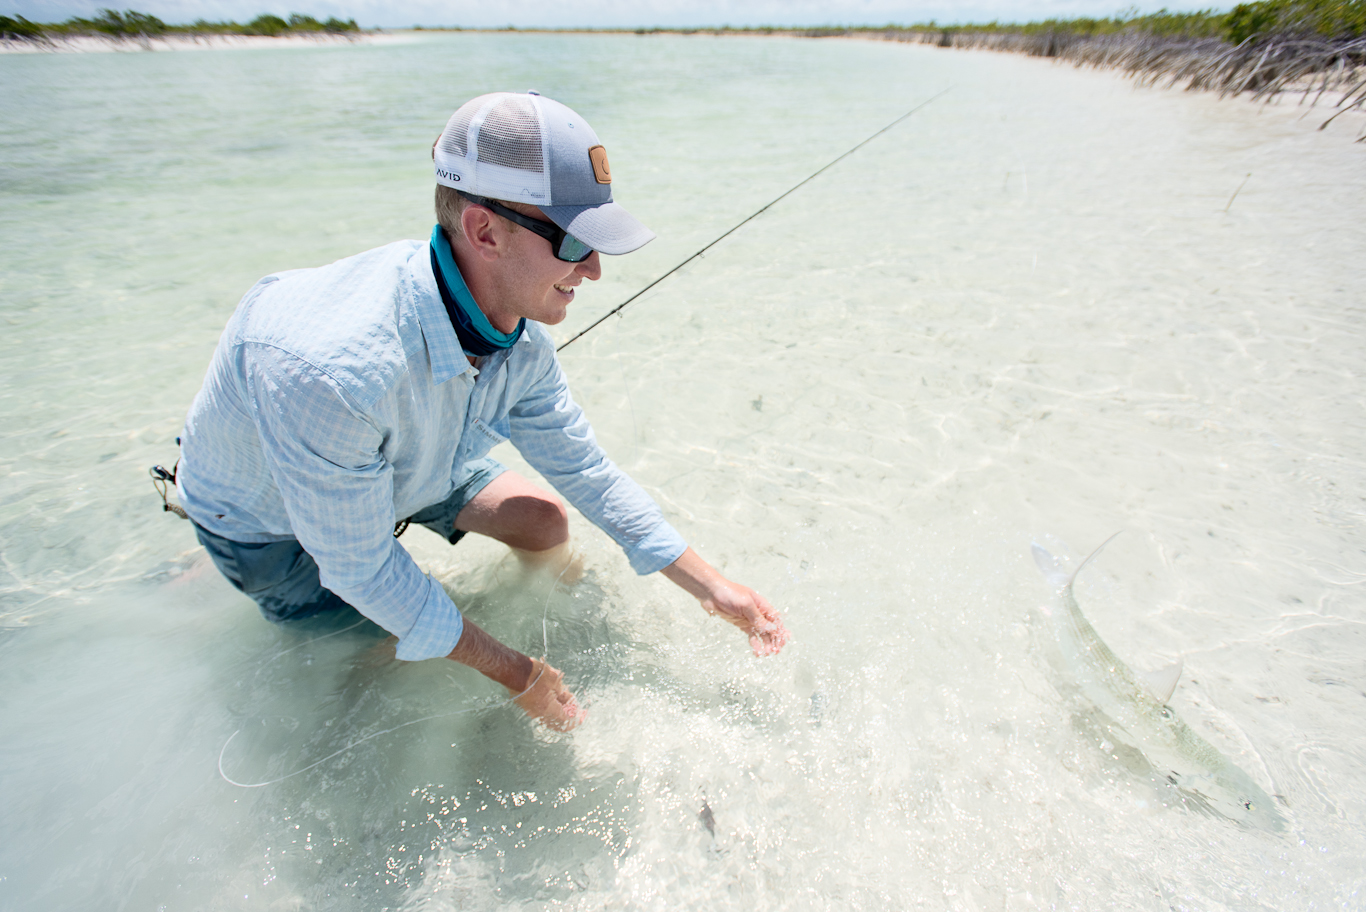 Bahamas, South Andros, Flyfishing, Bonefish